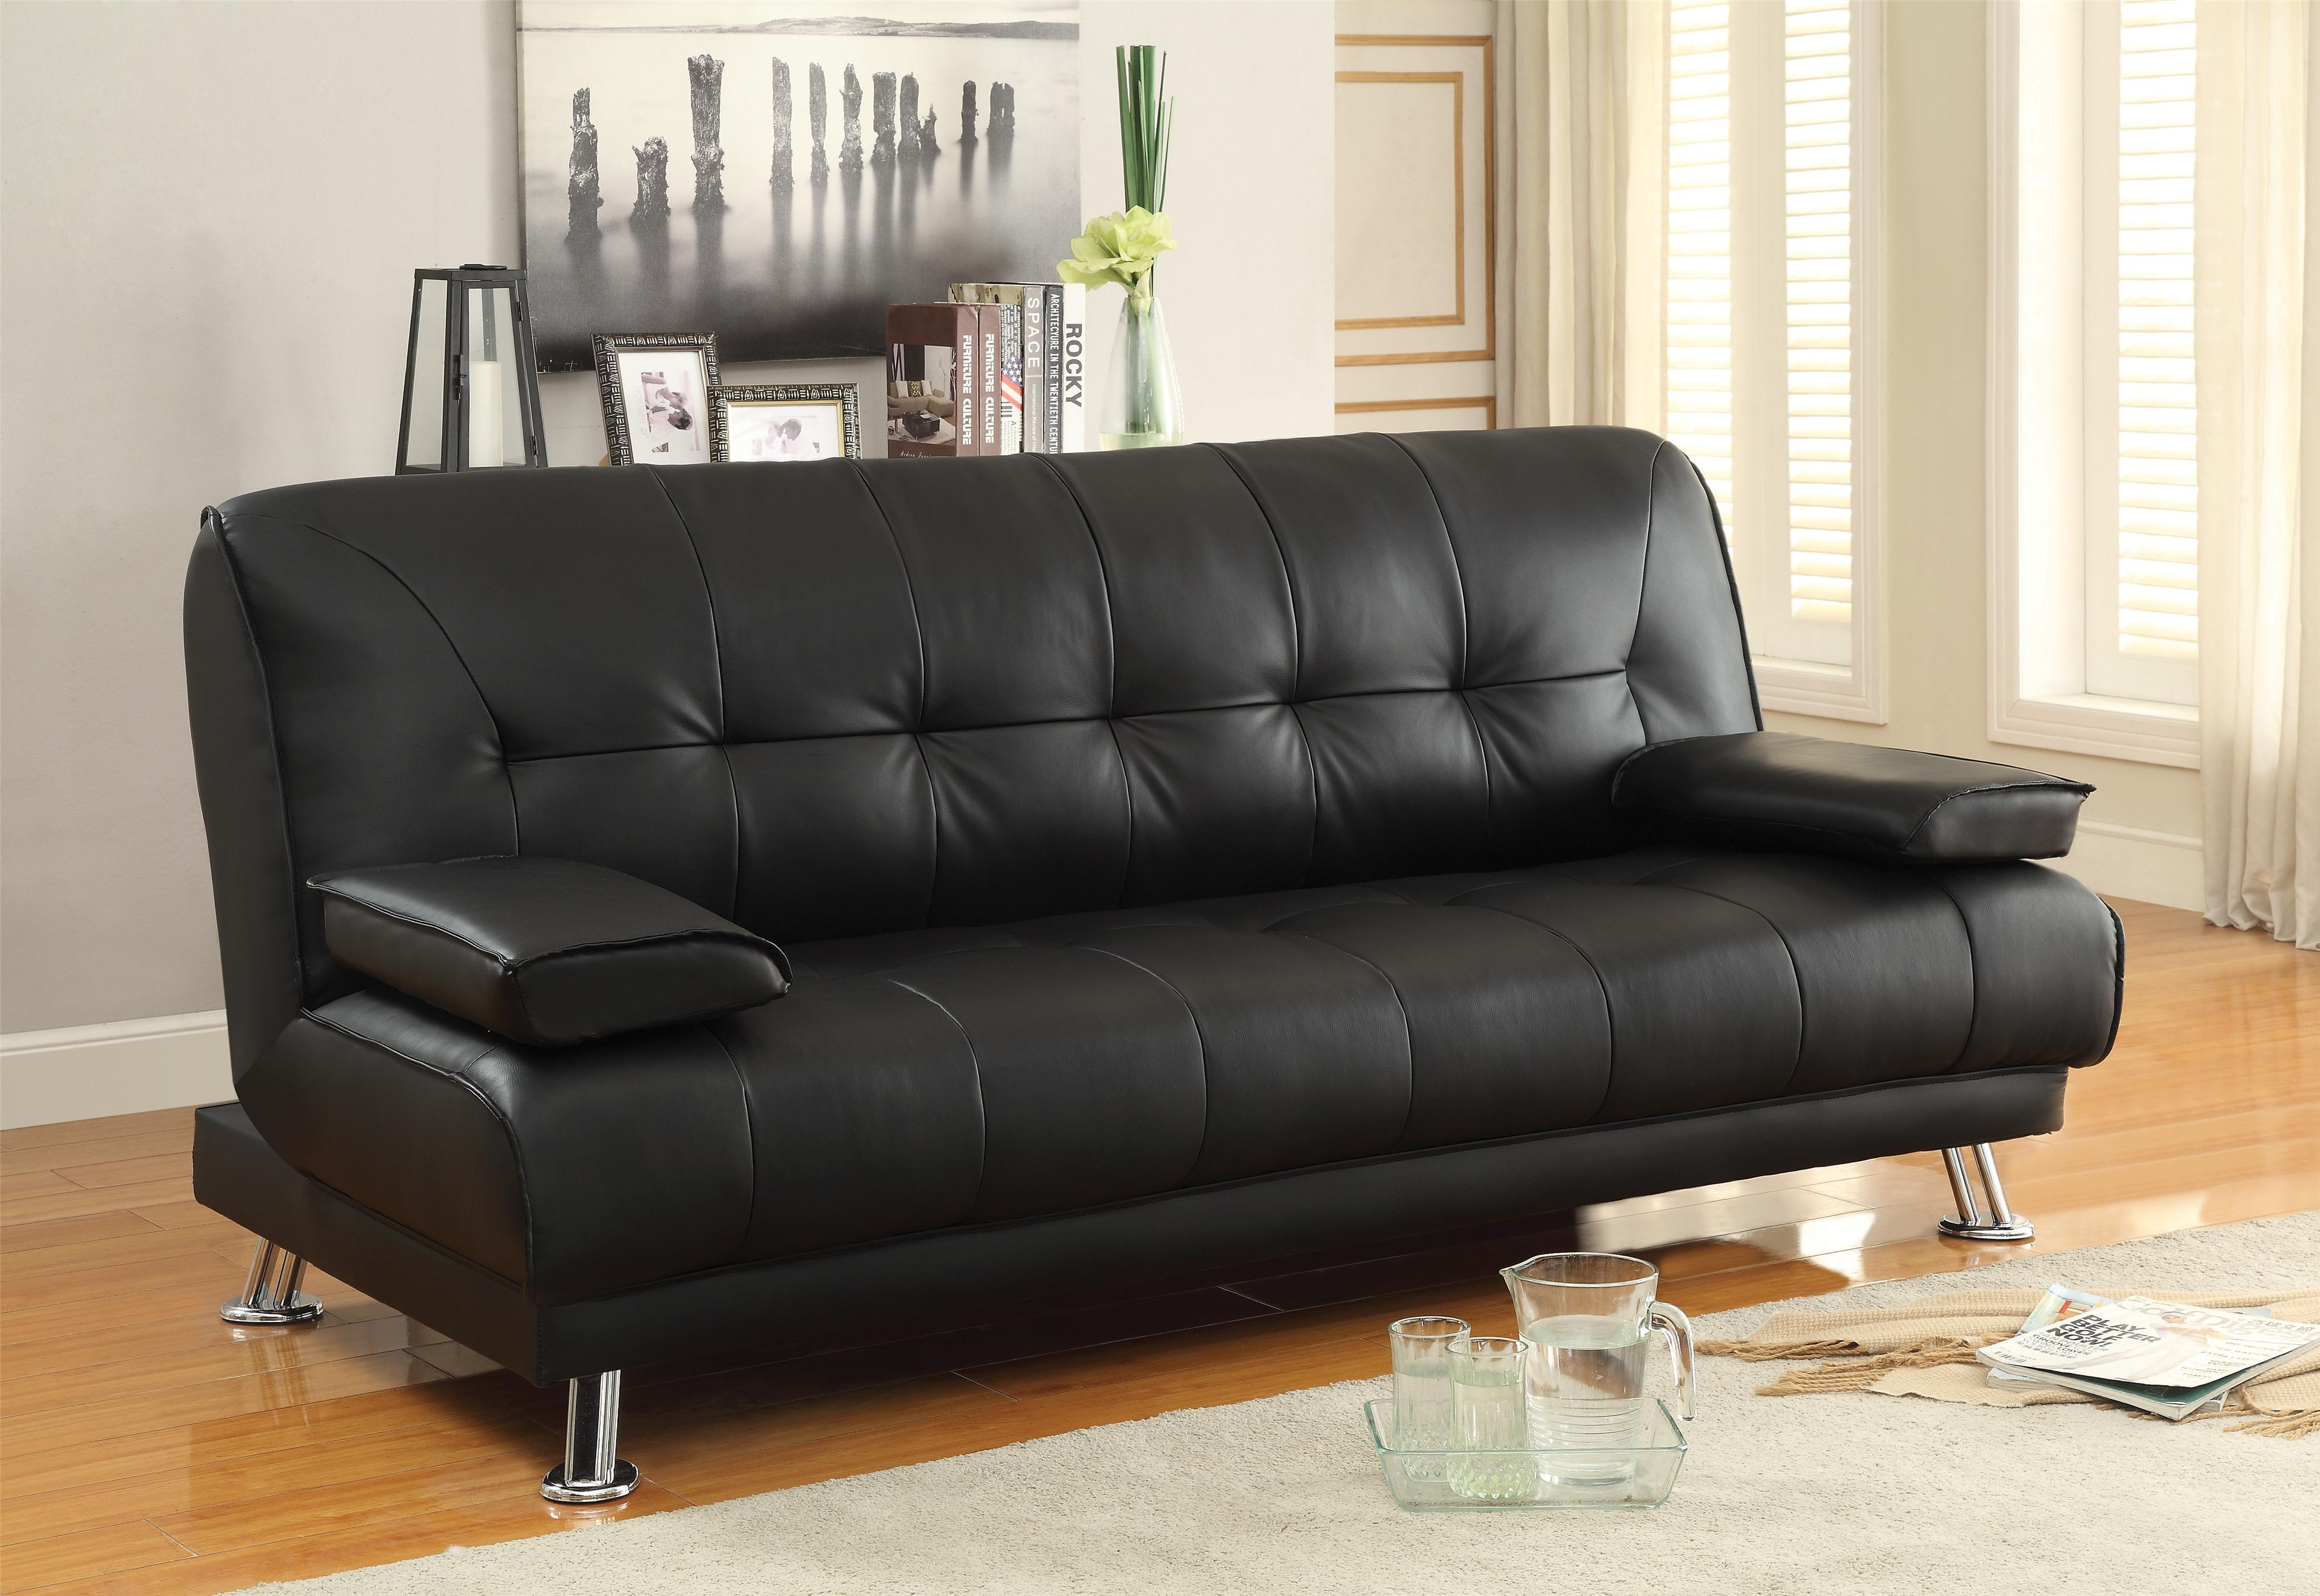 Sofa beds and futons faux leather convertible sofa bed with removable armrests quality Couches bed